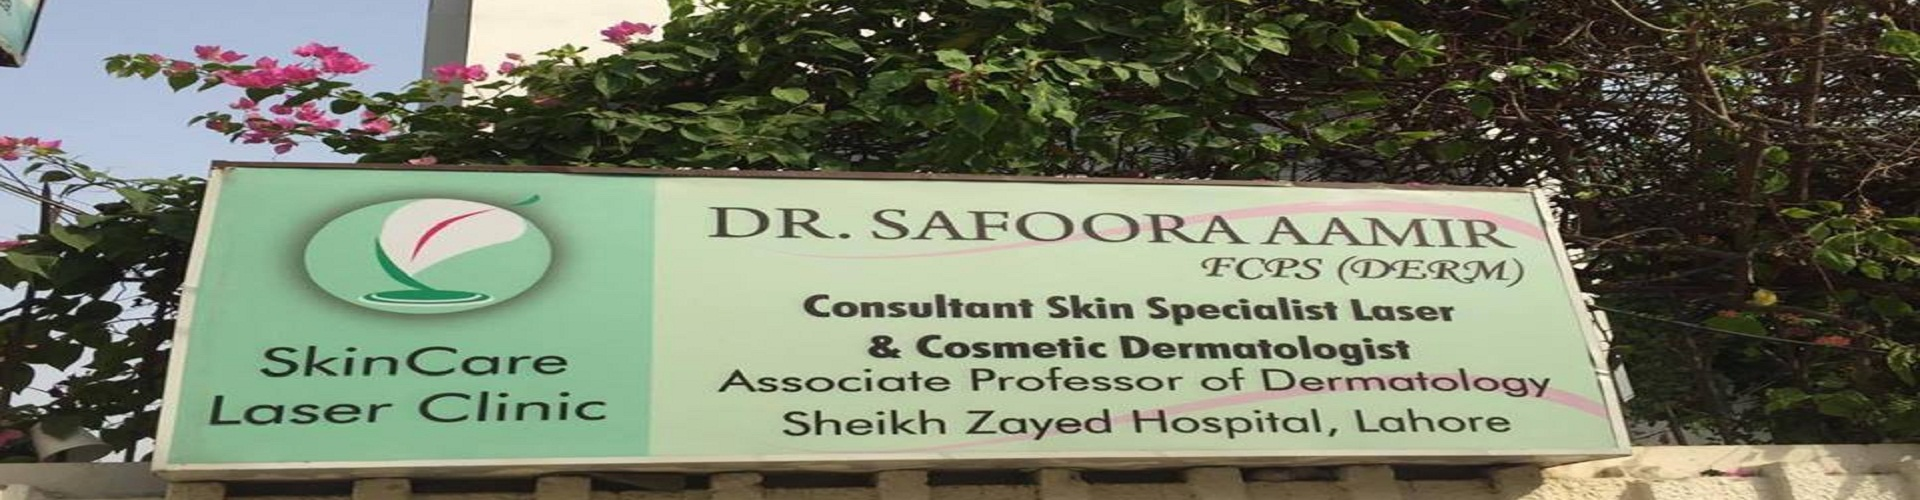 Skin care and laser clinic front